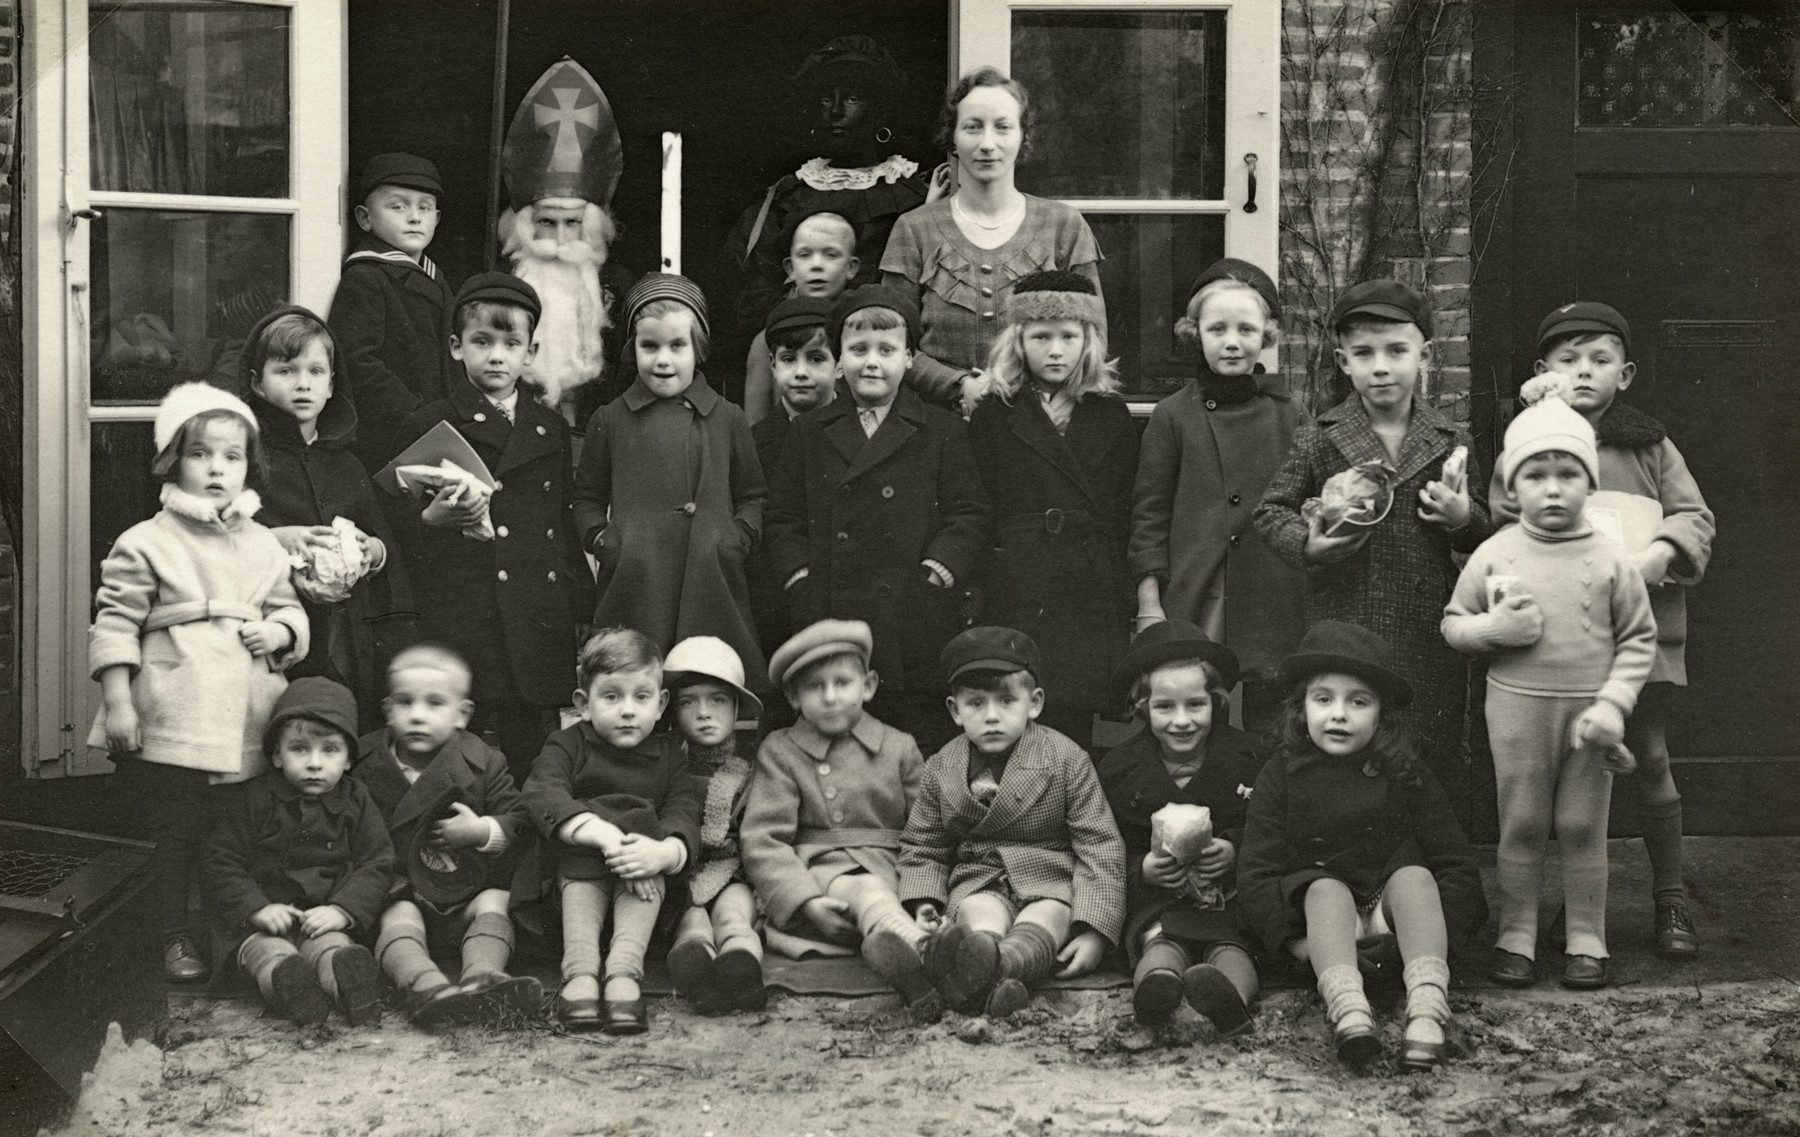 Group portrait of a kindergarten class with their teacher  celebrating Sinterklaas (St. Nicholas' Eve).    Among those pictured are Henriette Mossel (standing in second row, far left, in white coat), and men wearing the costumes of St. Nicholas and Zwarte Piet.